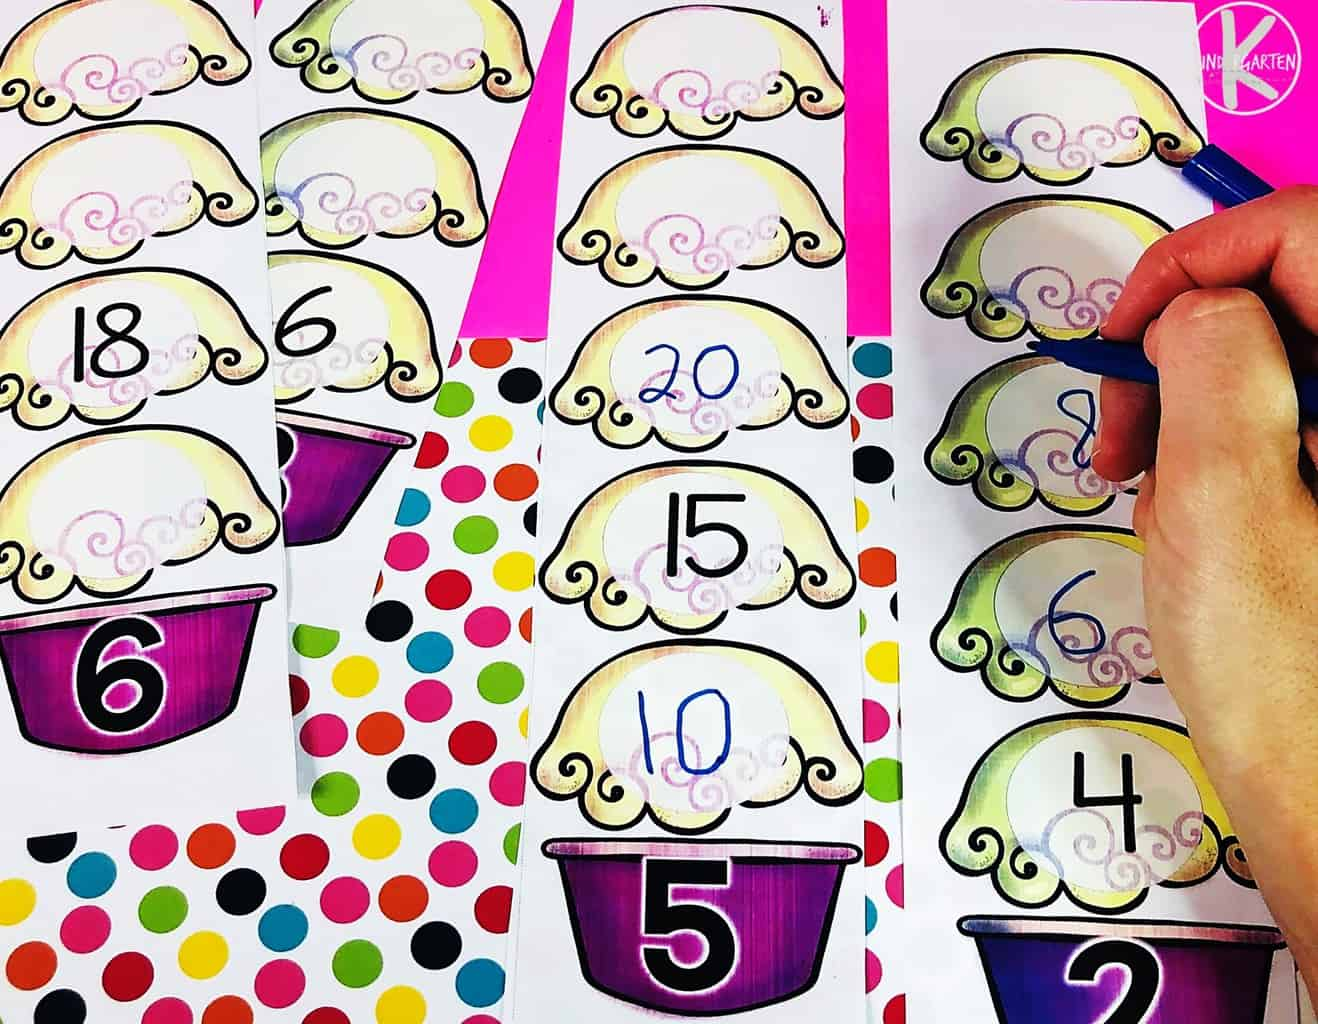 practice skip counting by 2,5 & 6 with this fun, free printable skip counting activity for kindergarten, 1st grade, and 2nd grade students